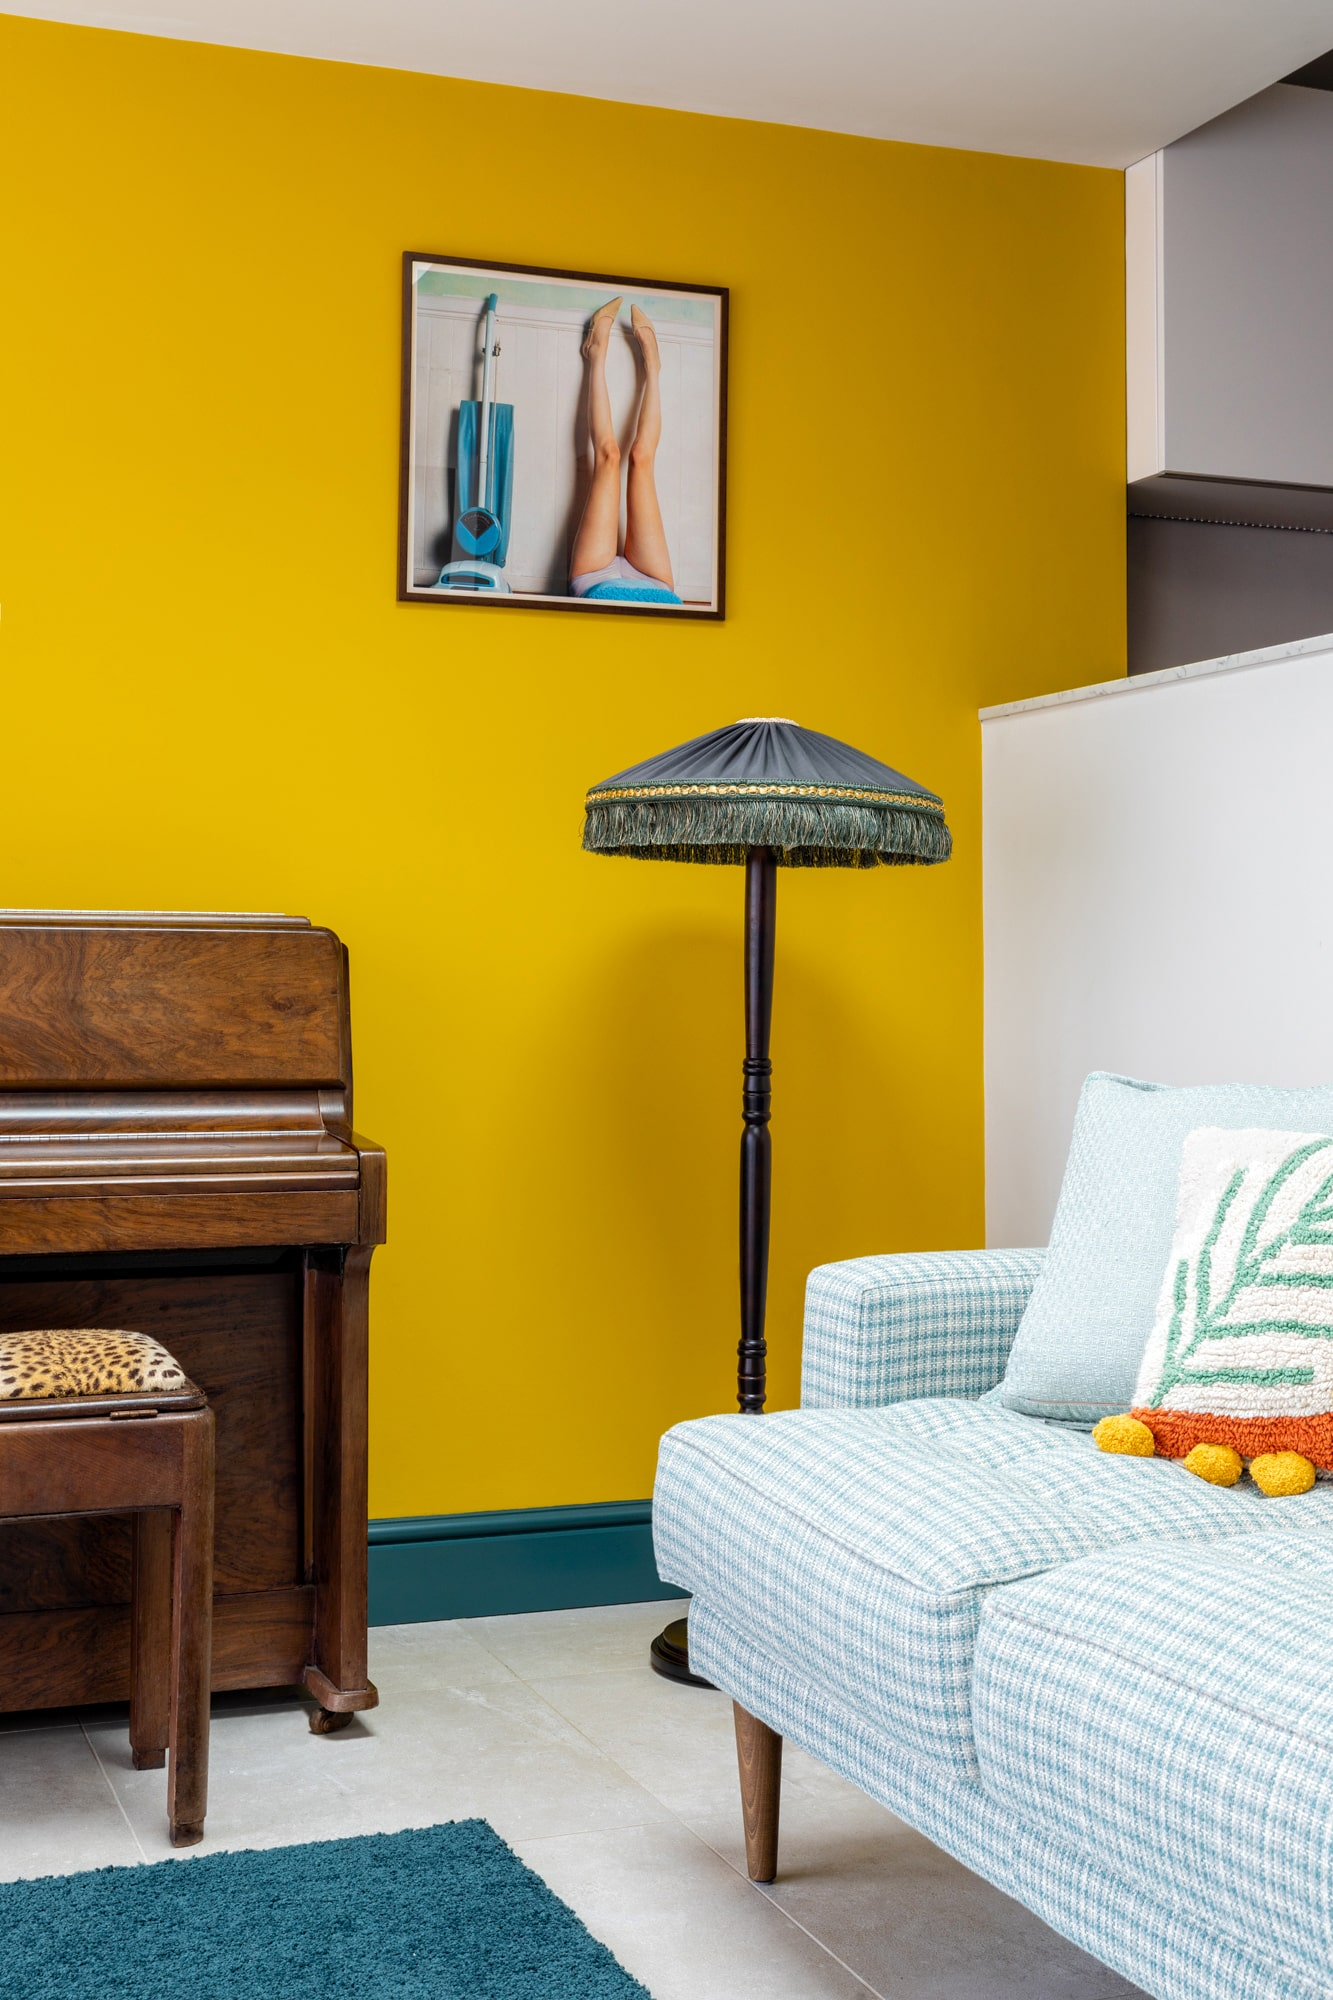 Interior design close up photo: a view from a dining area to a sitting living room area with a wooden table, a yellow wall, a brown piano and a sofa upholstered with green gingham pattern. There is a standing lamp on the left side of the sofa